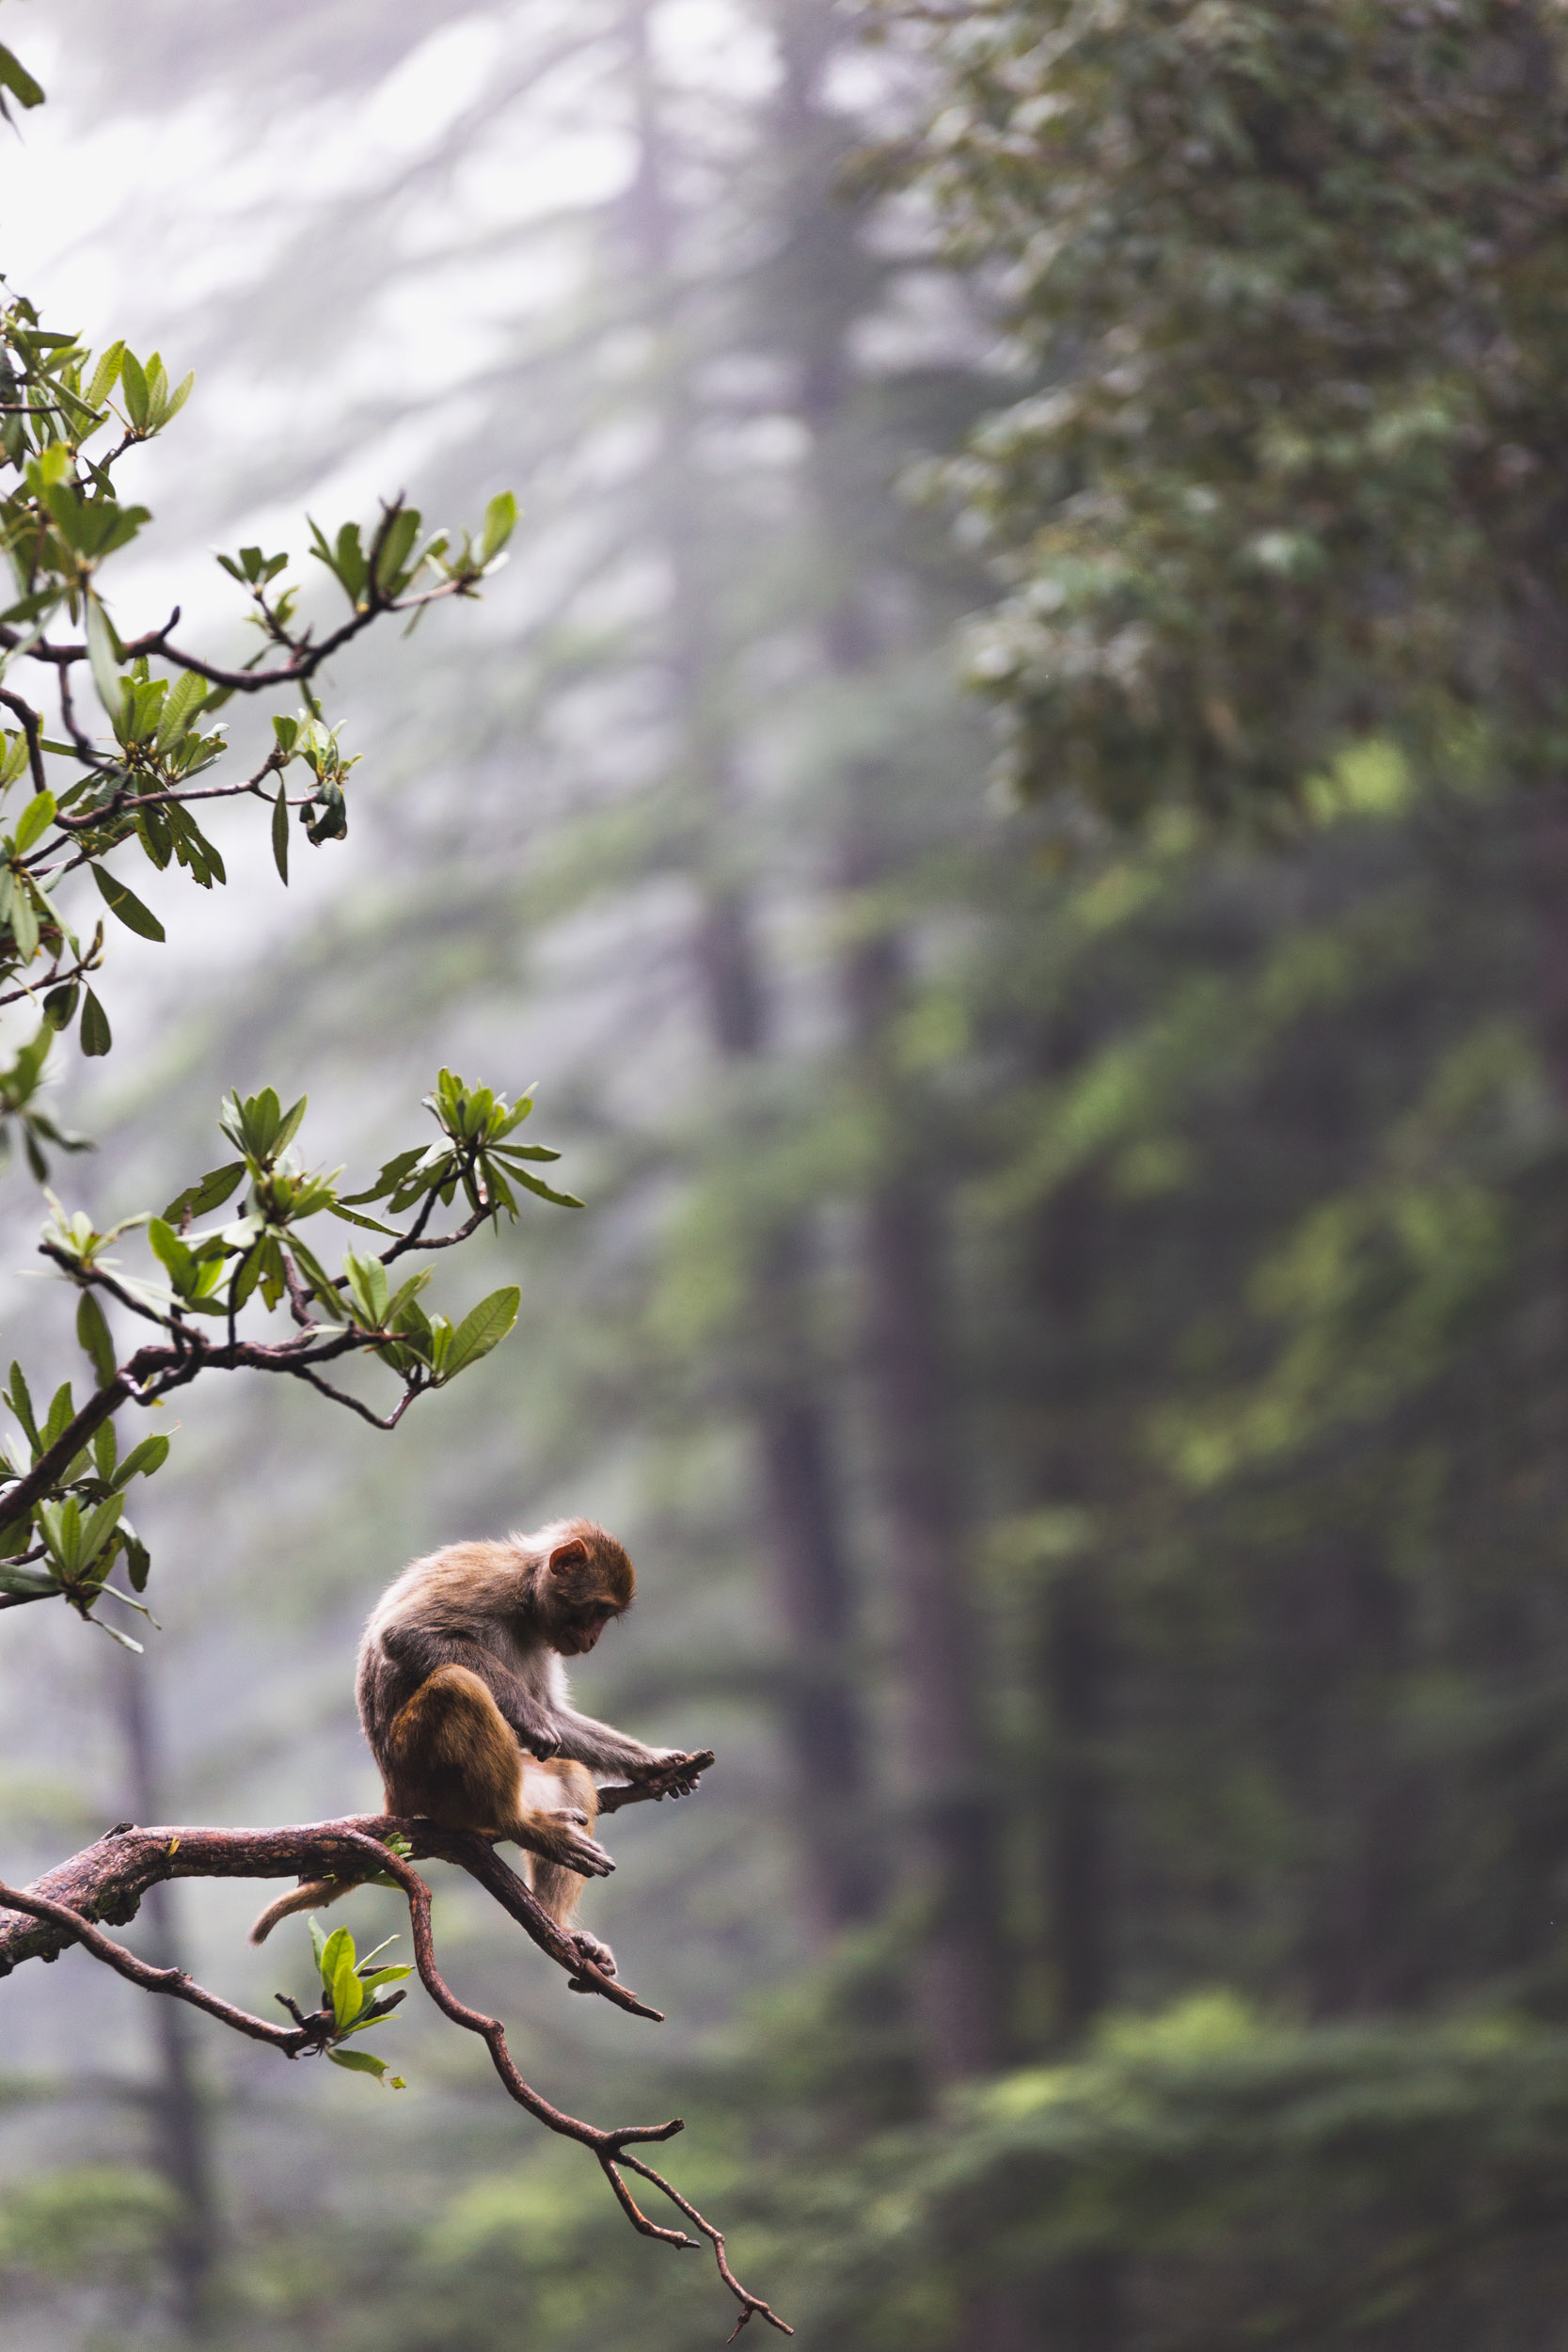 Misty Monkey in the forrest of Naddi, India,